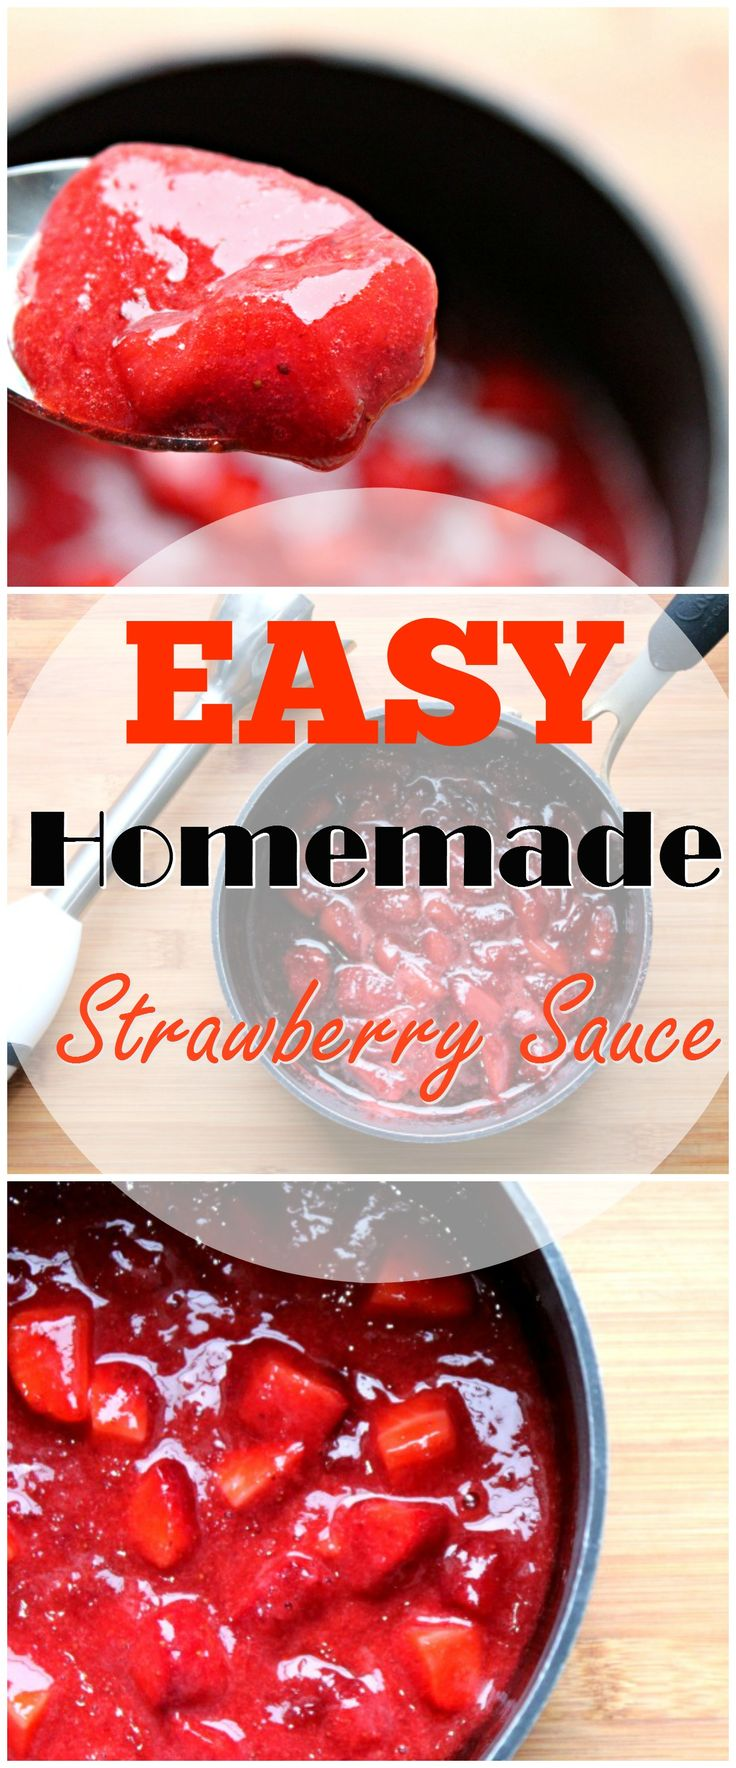 This EASY Homemade Strawberry Sauce is the perfect finishing touch for ice cream, angel food cakes or cheesecake! What will you try it on?